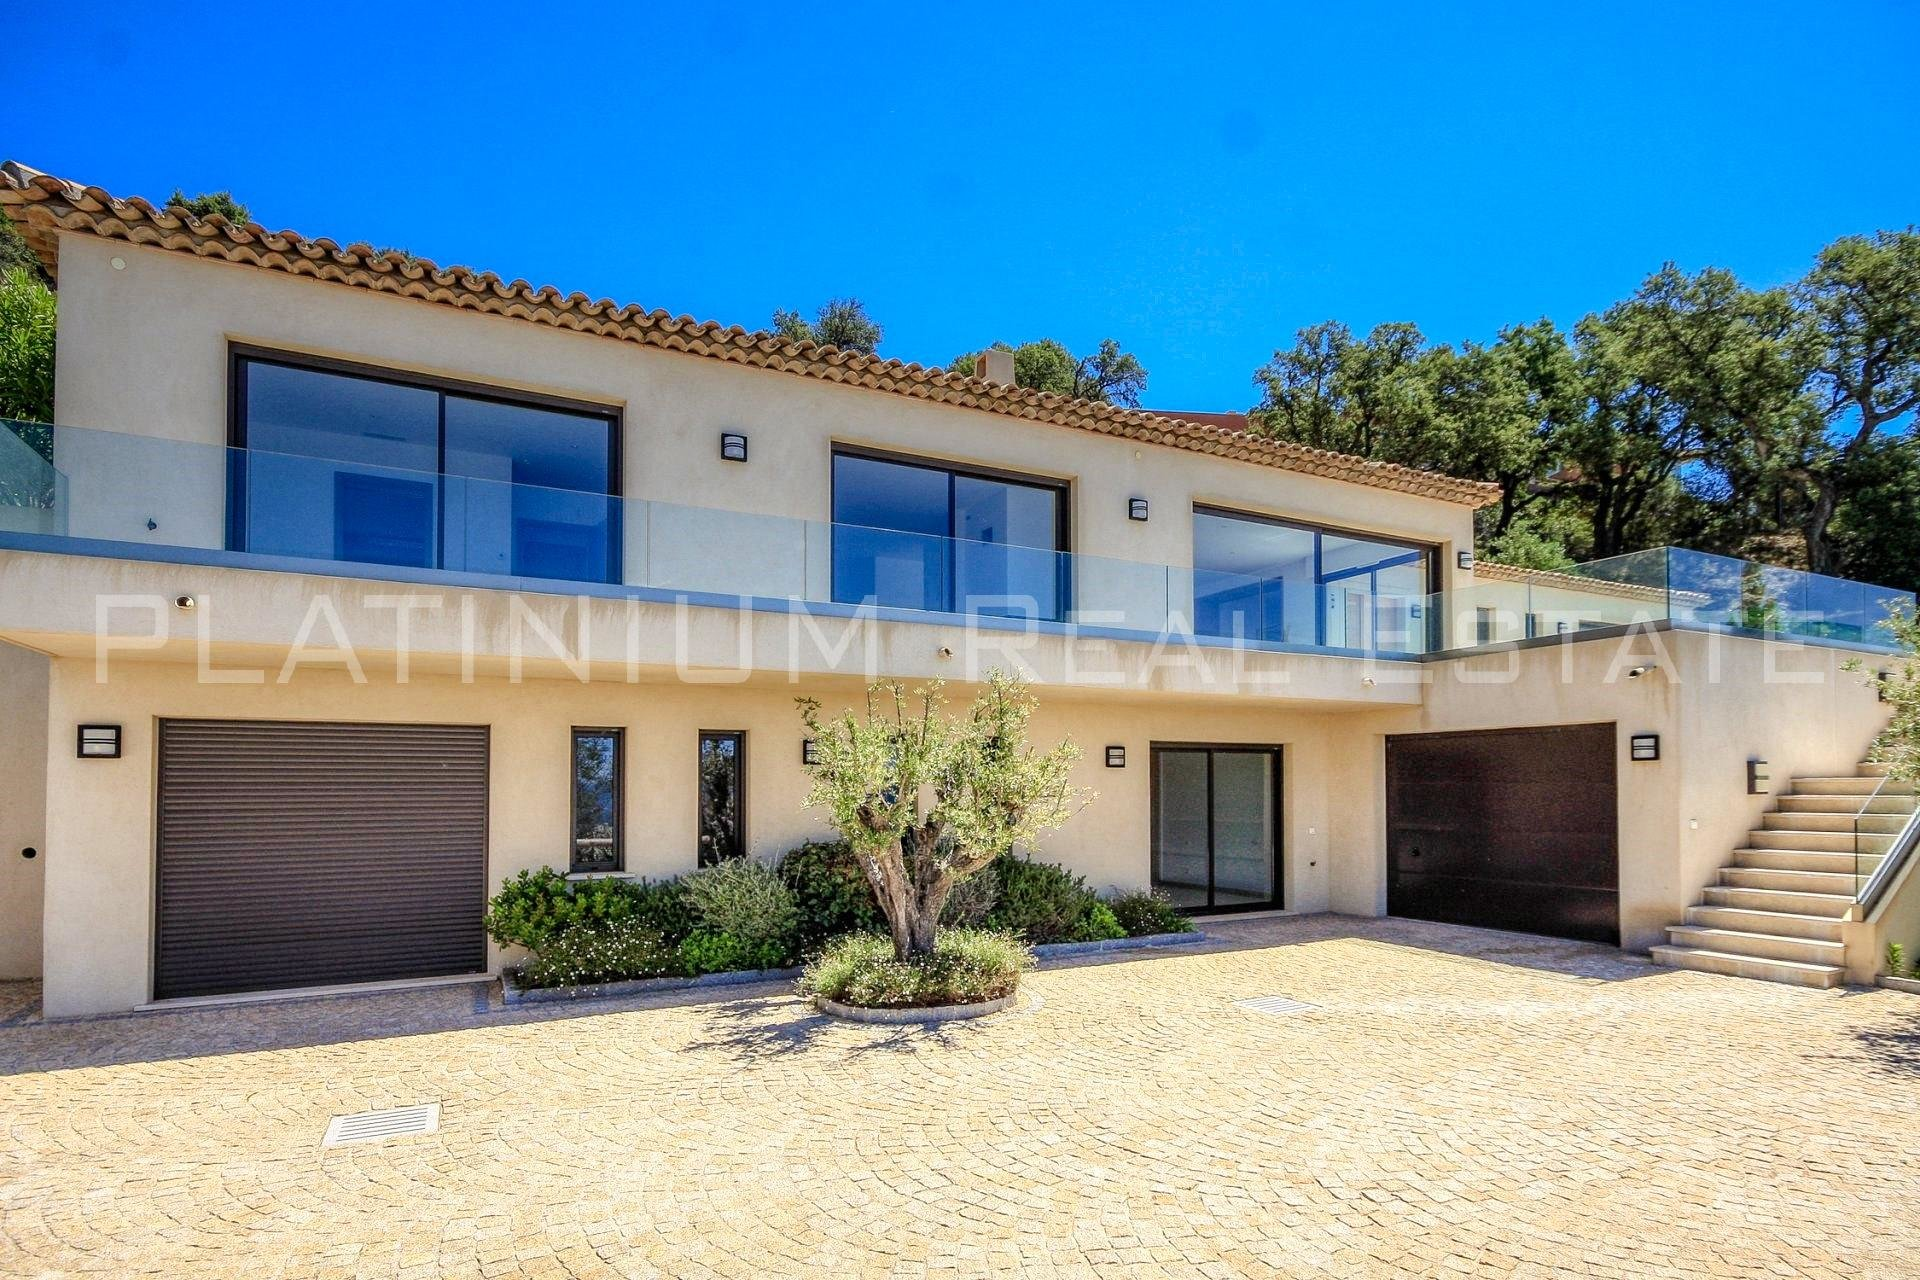 GRIMAUD - VILLA 266 m2 - 4 bedrooms - Panoramic sea view - Swimming pool